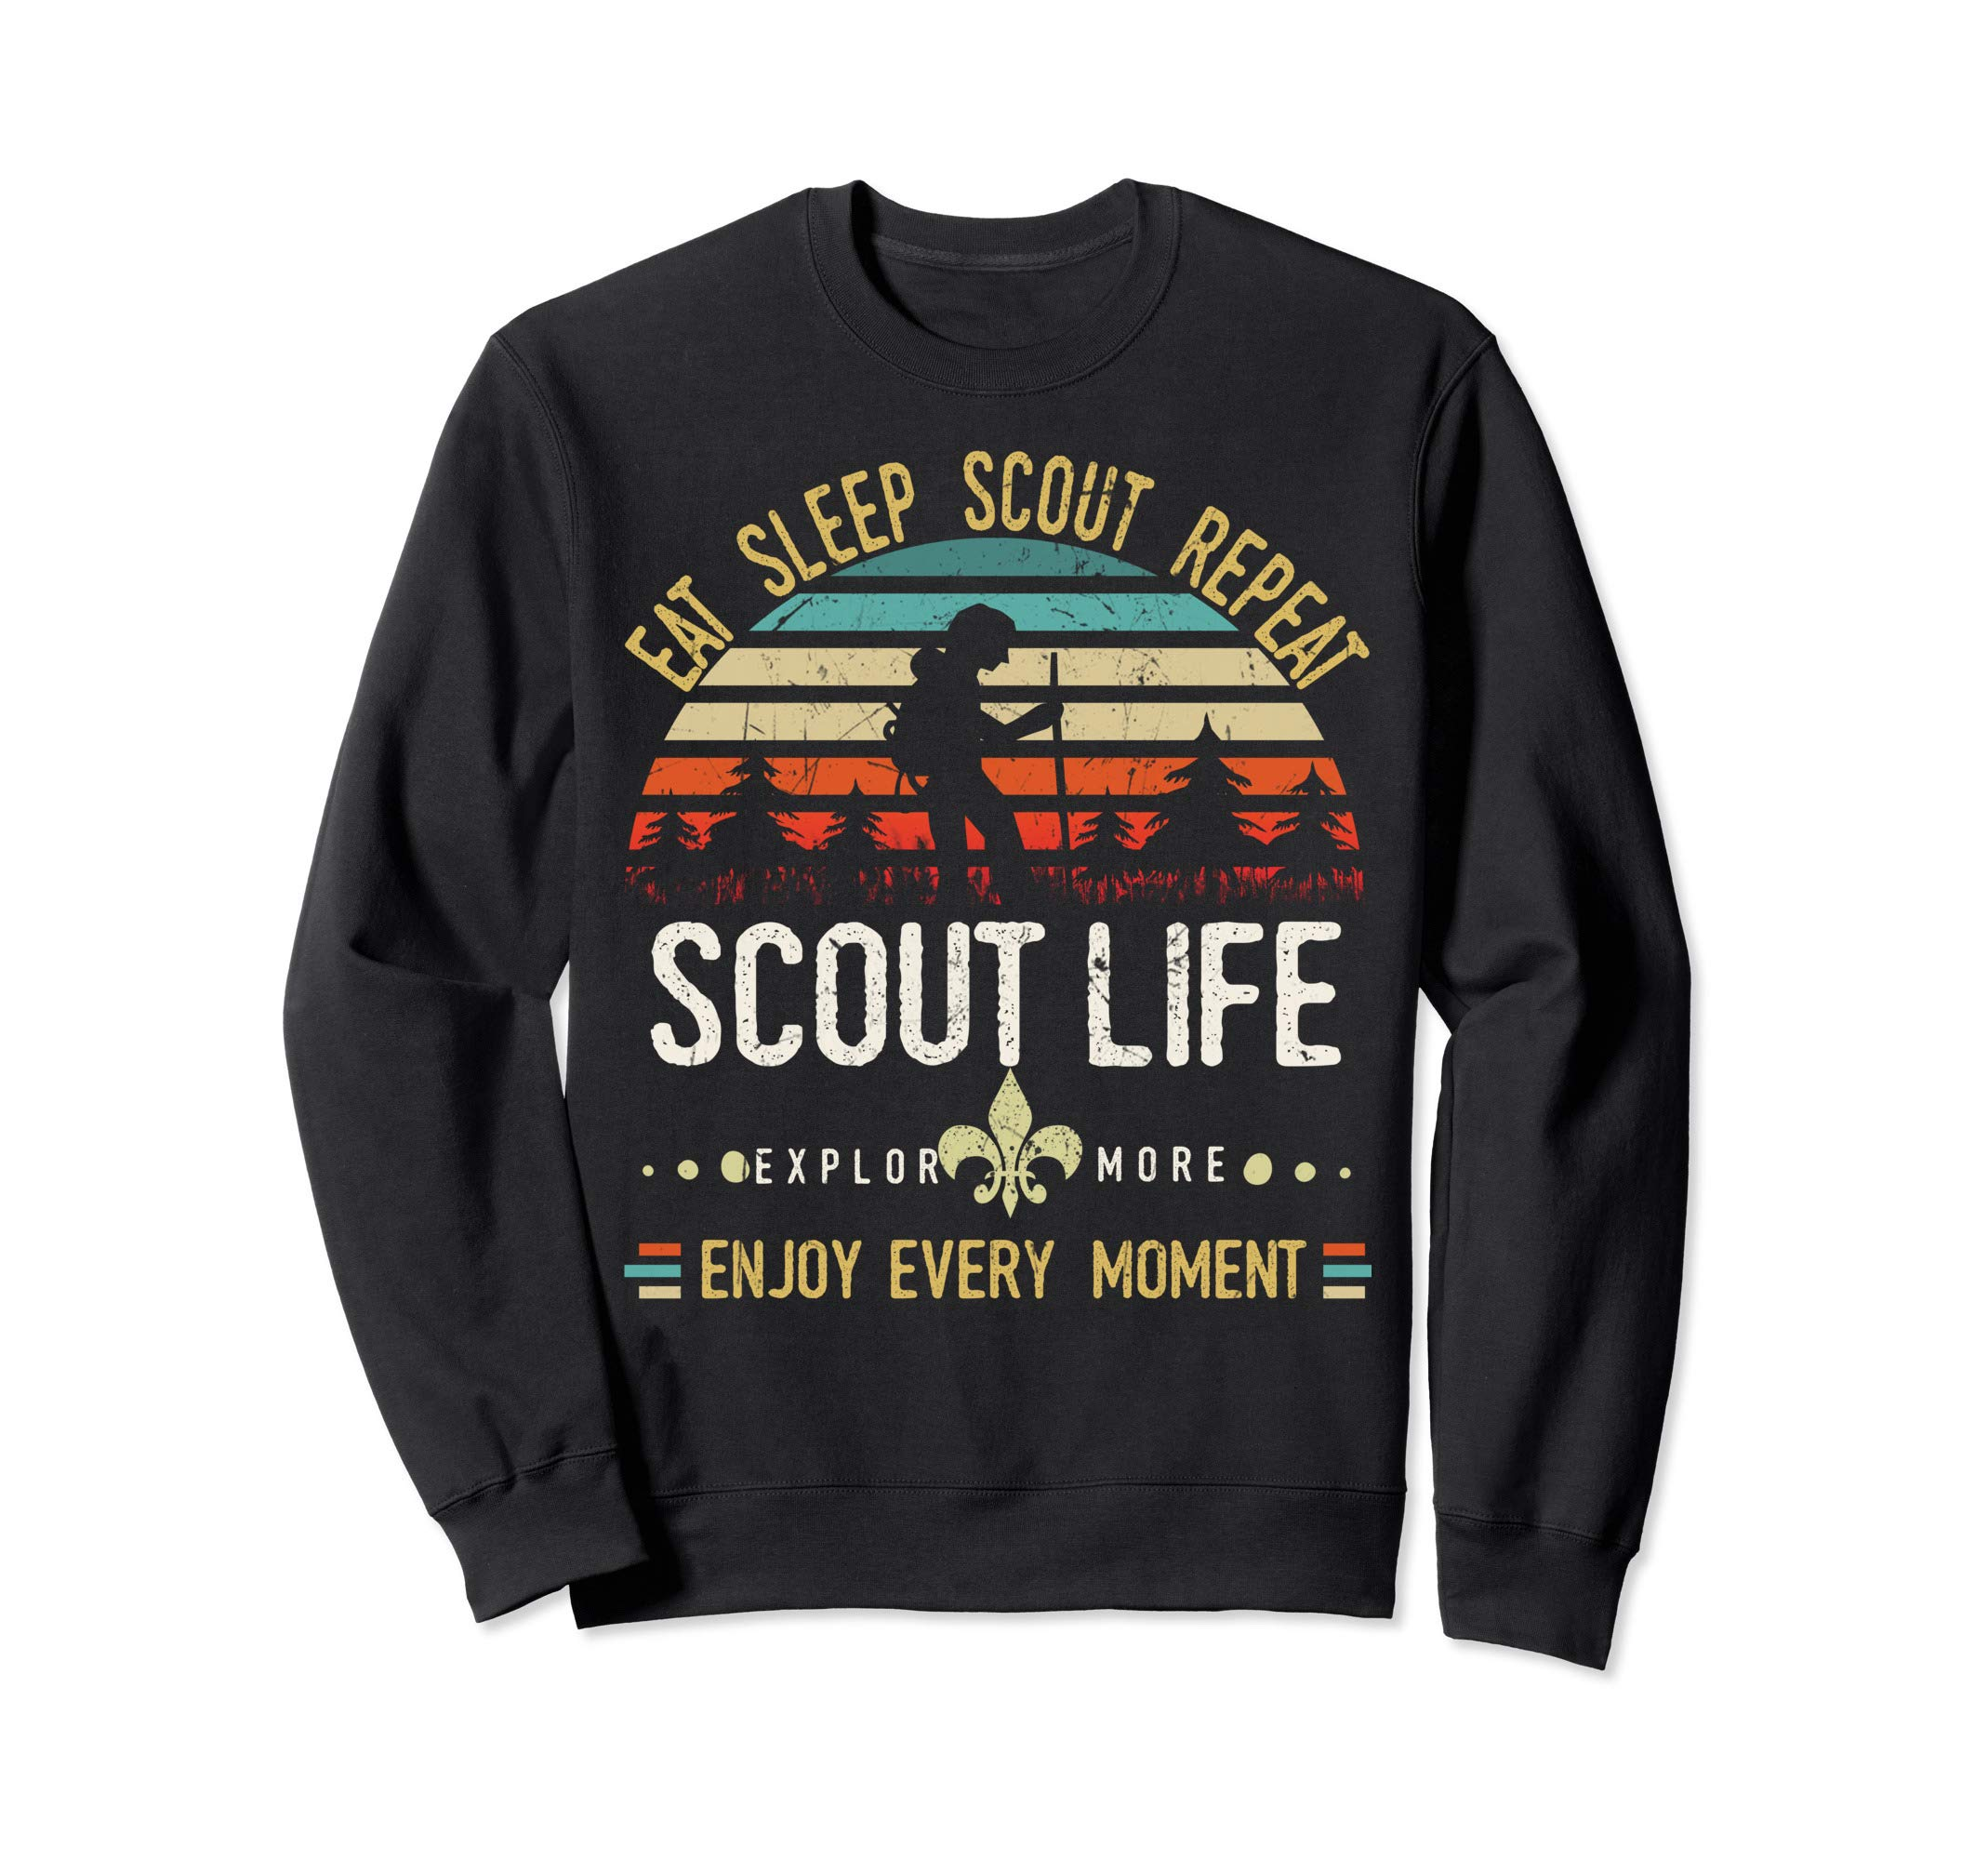 Eat Sleep Scout Repeat | Vintage Scouting Scout life Sweatshirt by Cub Camping Hiking Scouting Gifts